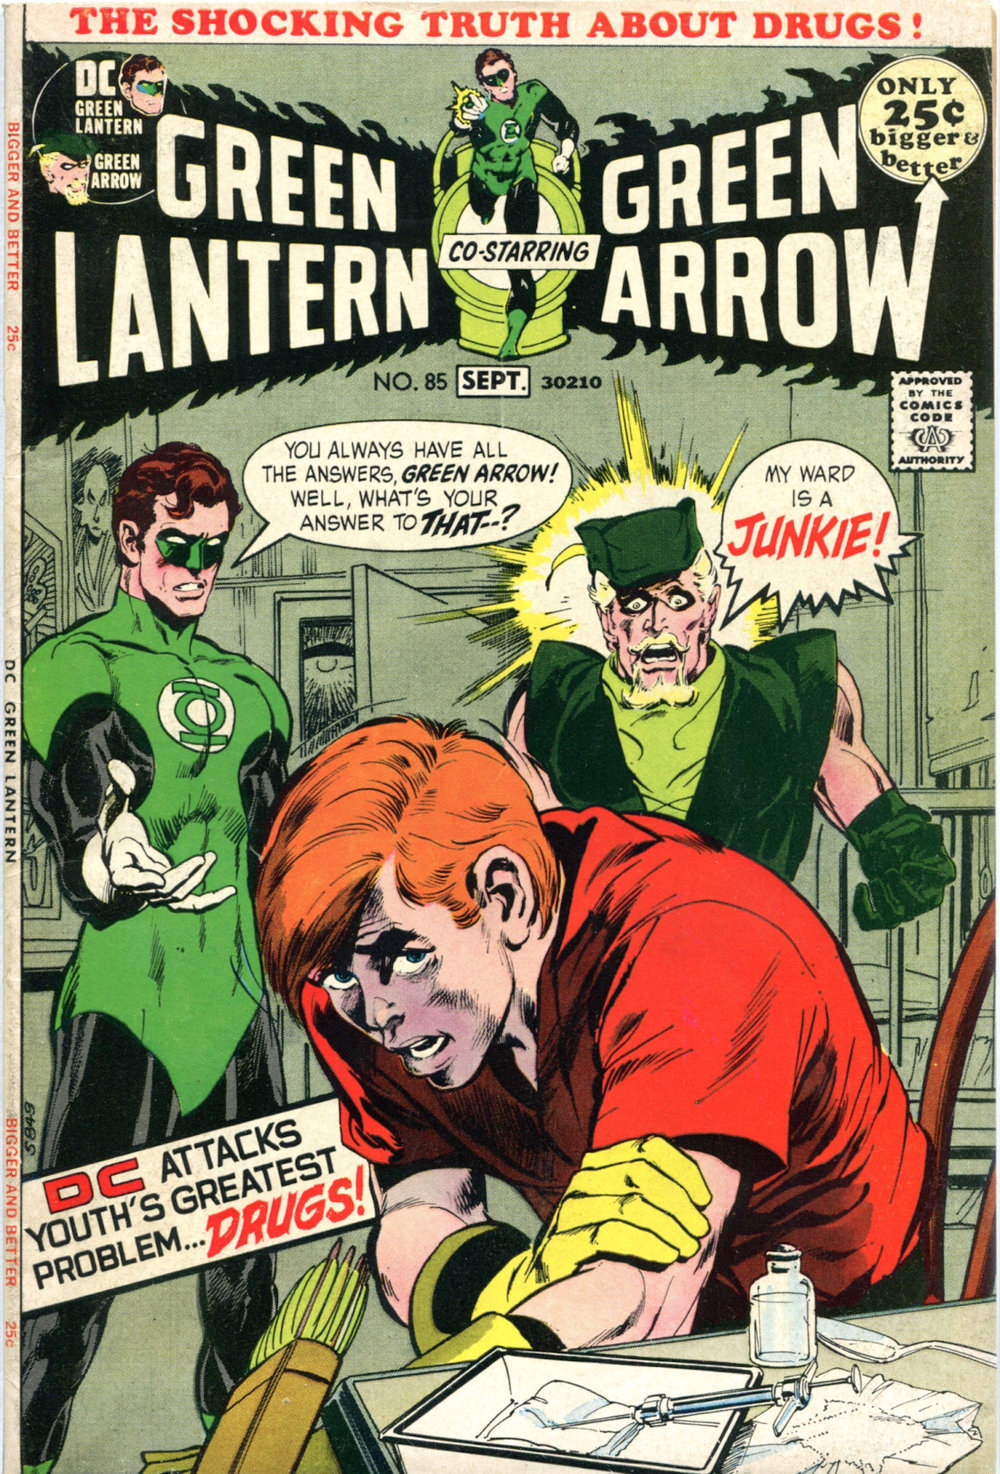 Green Lantern (1960) #85, written by Denny O'Neil.